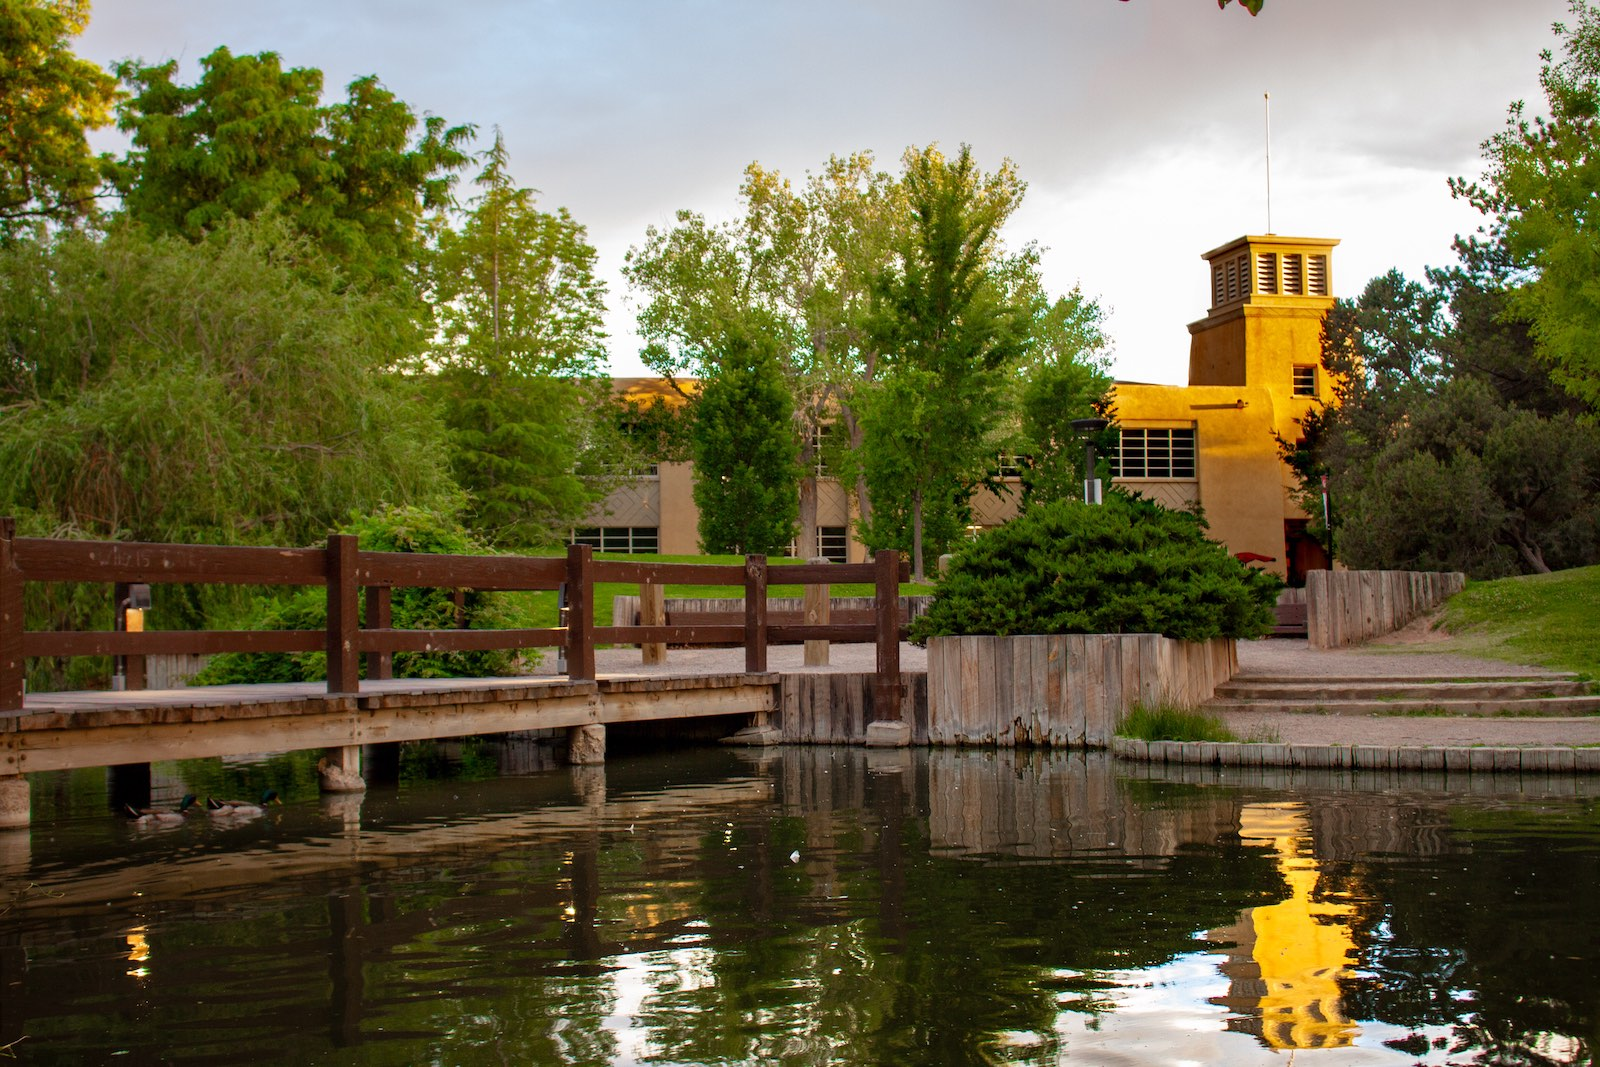 Pond on the campus of the University of New Mexico